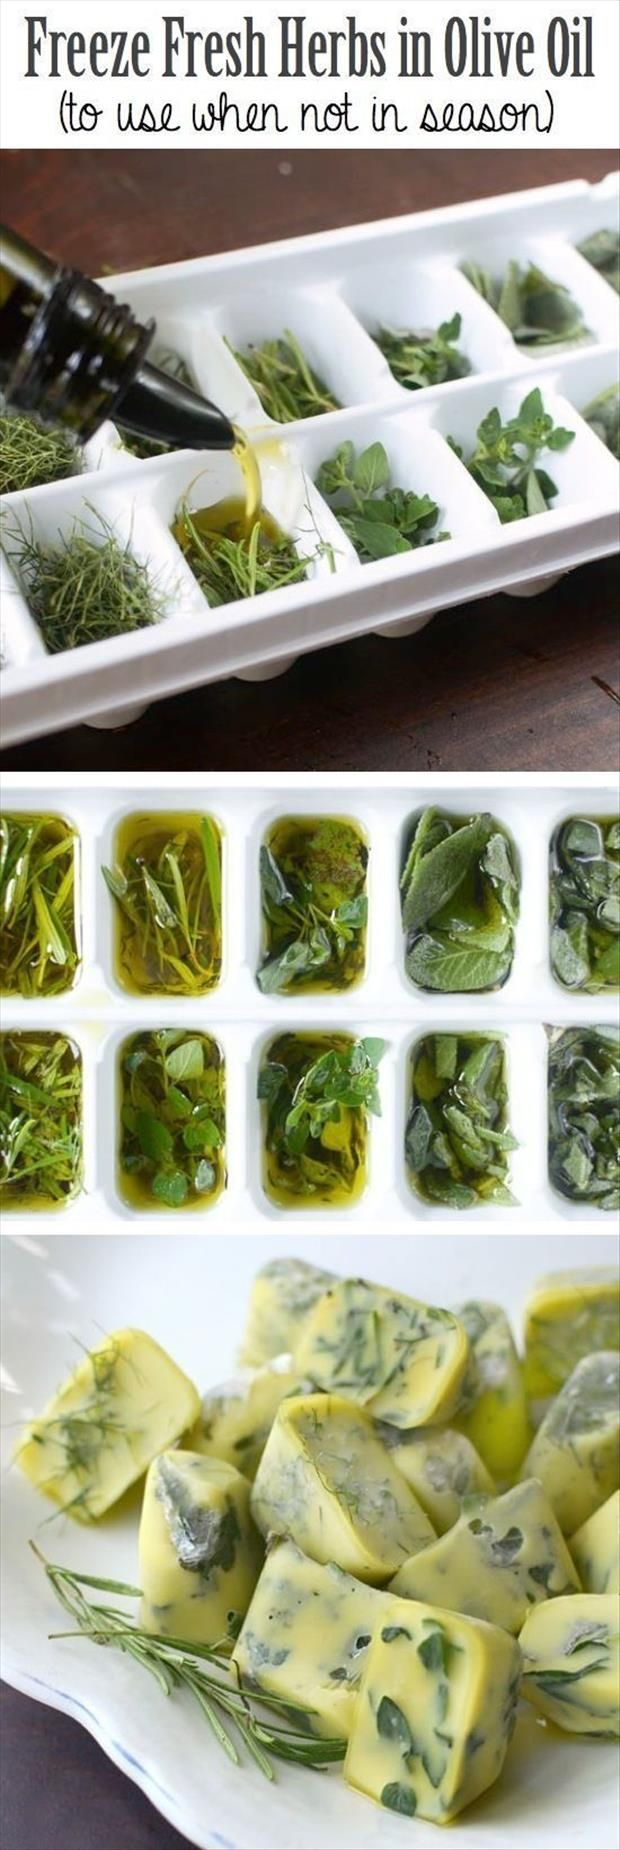 Freeze herbs while they are fresh - put chopped herbs into ice tray and add olive oil before freezing. Then put into freezer bags and label for later use